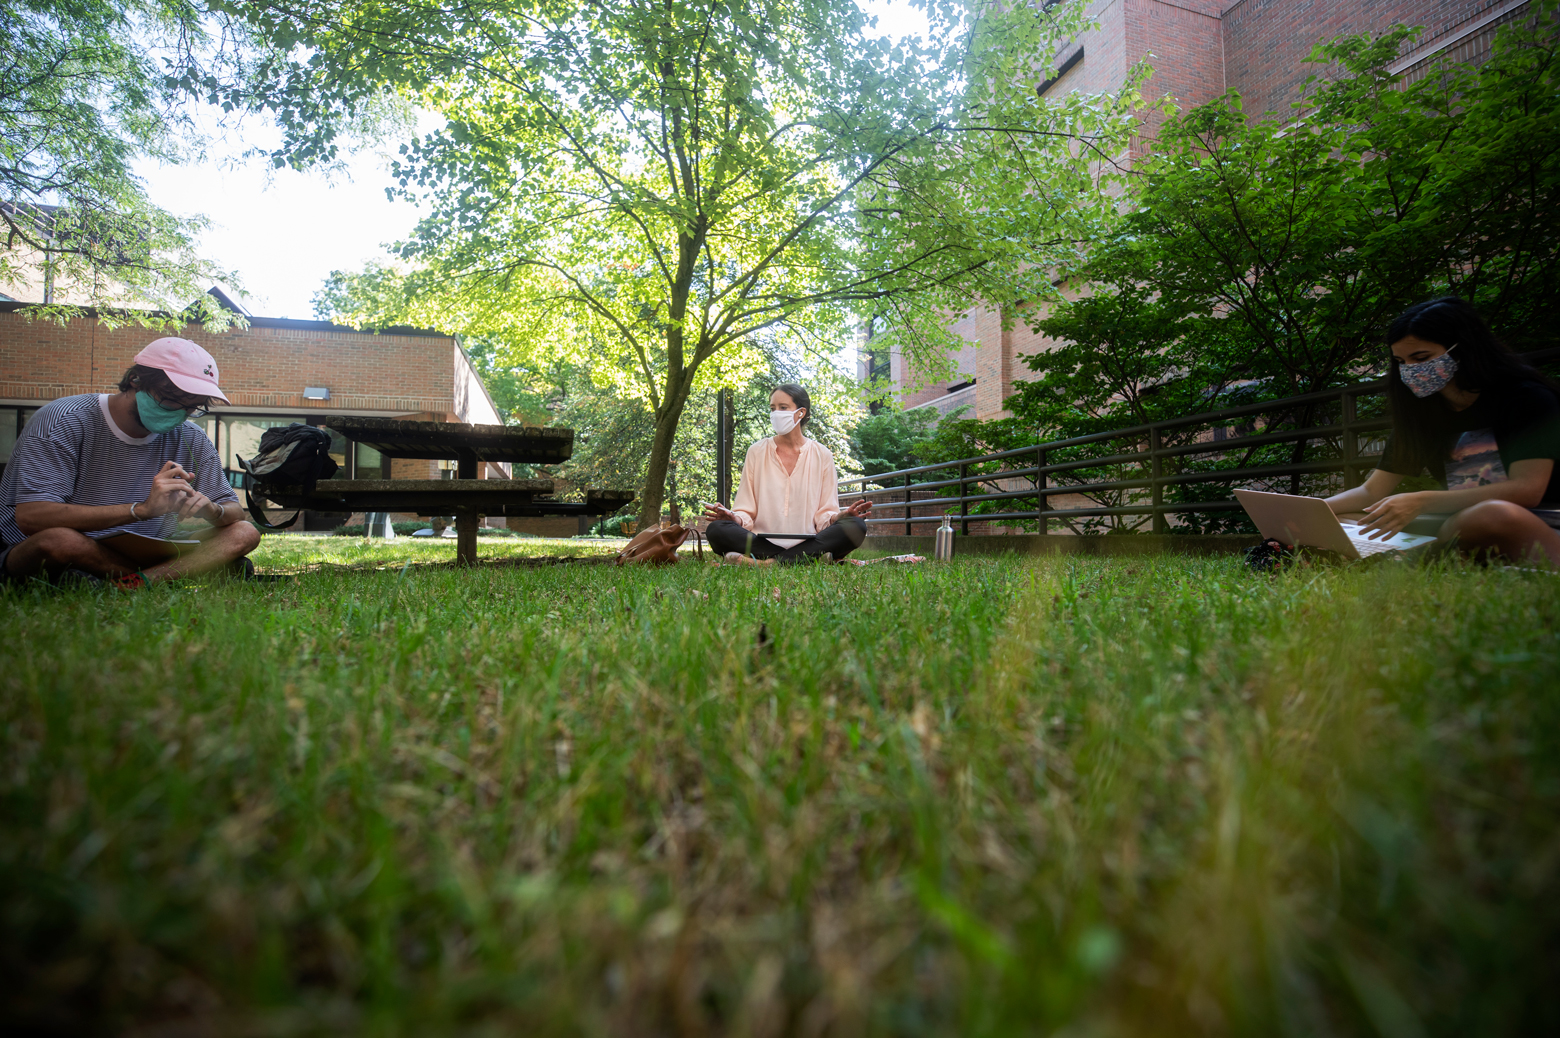 Lissa MacVean, a lecturer in civil and environmental engineering, teaches her graduate course outside. Photo by Joseph Xu